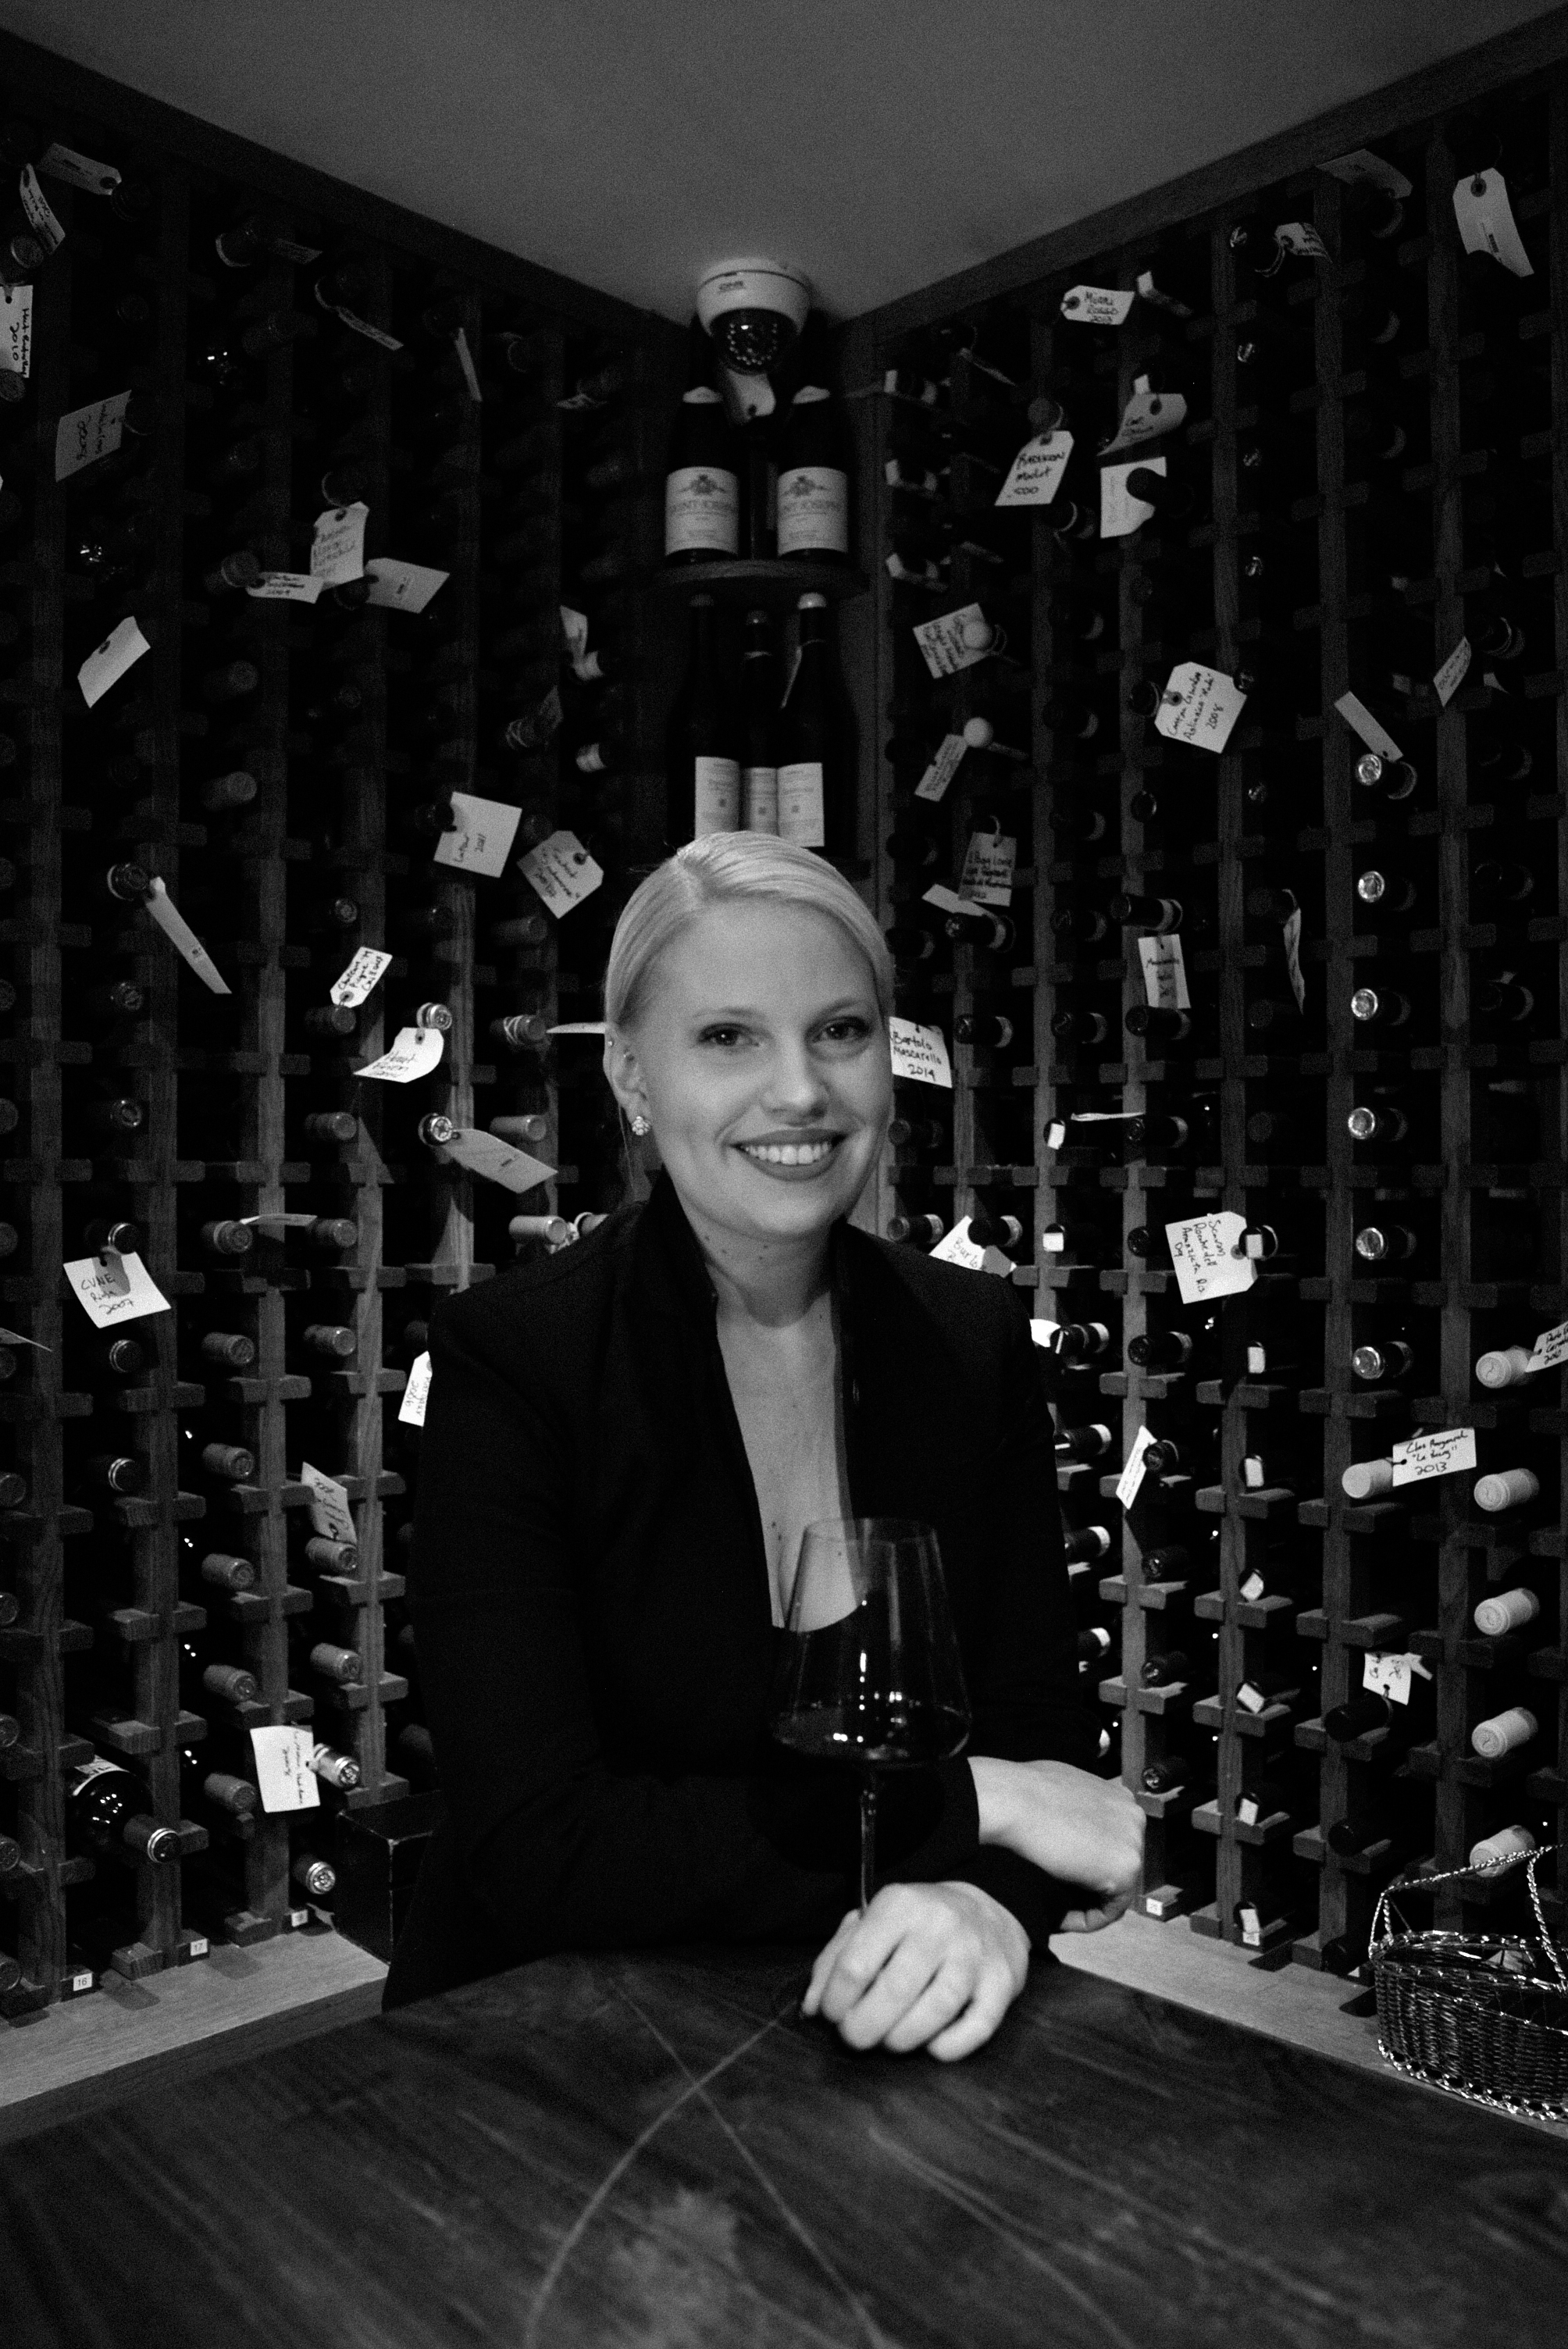 MOLLY AUSTAD, 4.12.19 - Molly Austad is the Beverage Manager for one of Austin's oldest and most prestigious restaurants, Jeffrey's, an upscale steakhouse that boasts a wide range of some of the world's most sought after wines, and one of multiple restaurants under the McGuire Moorman Hospitality group.